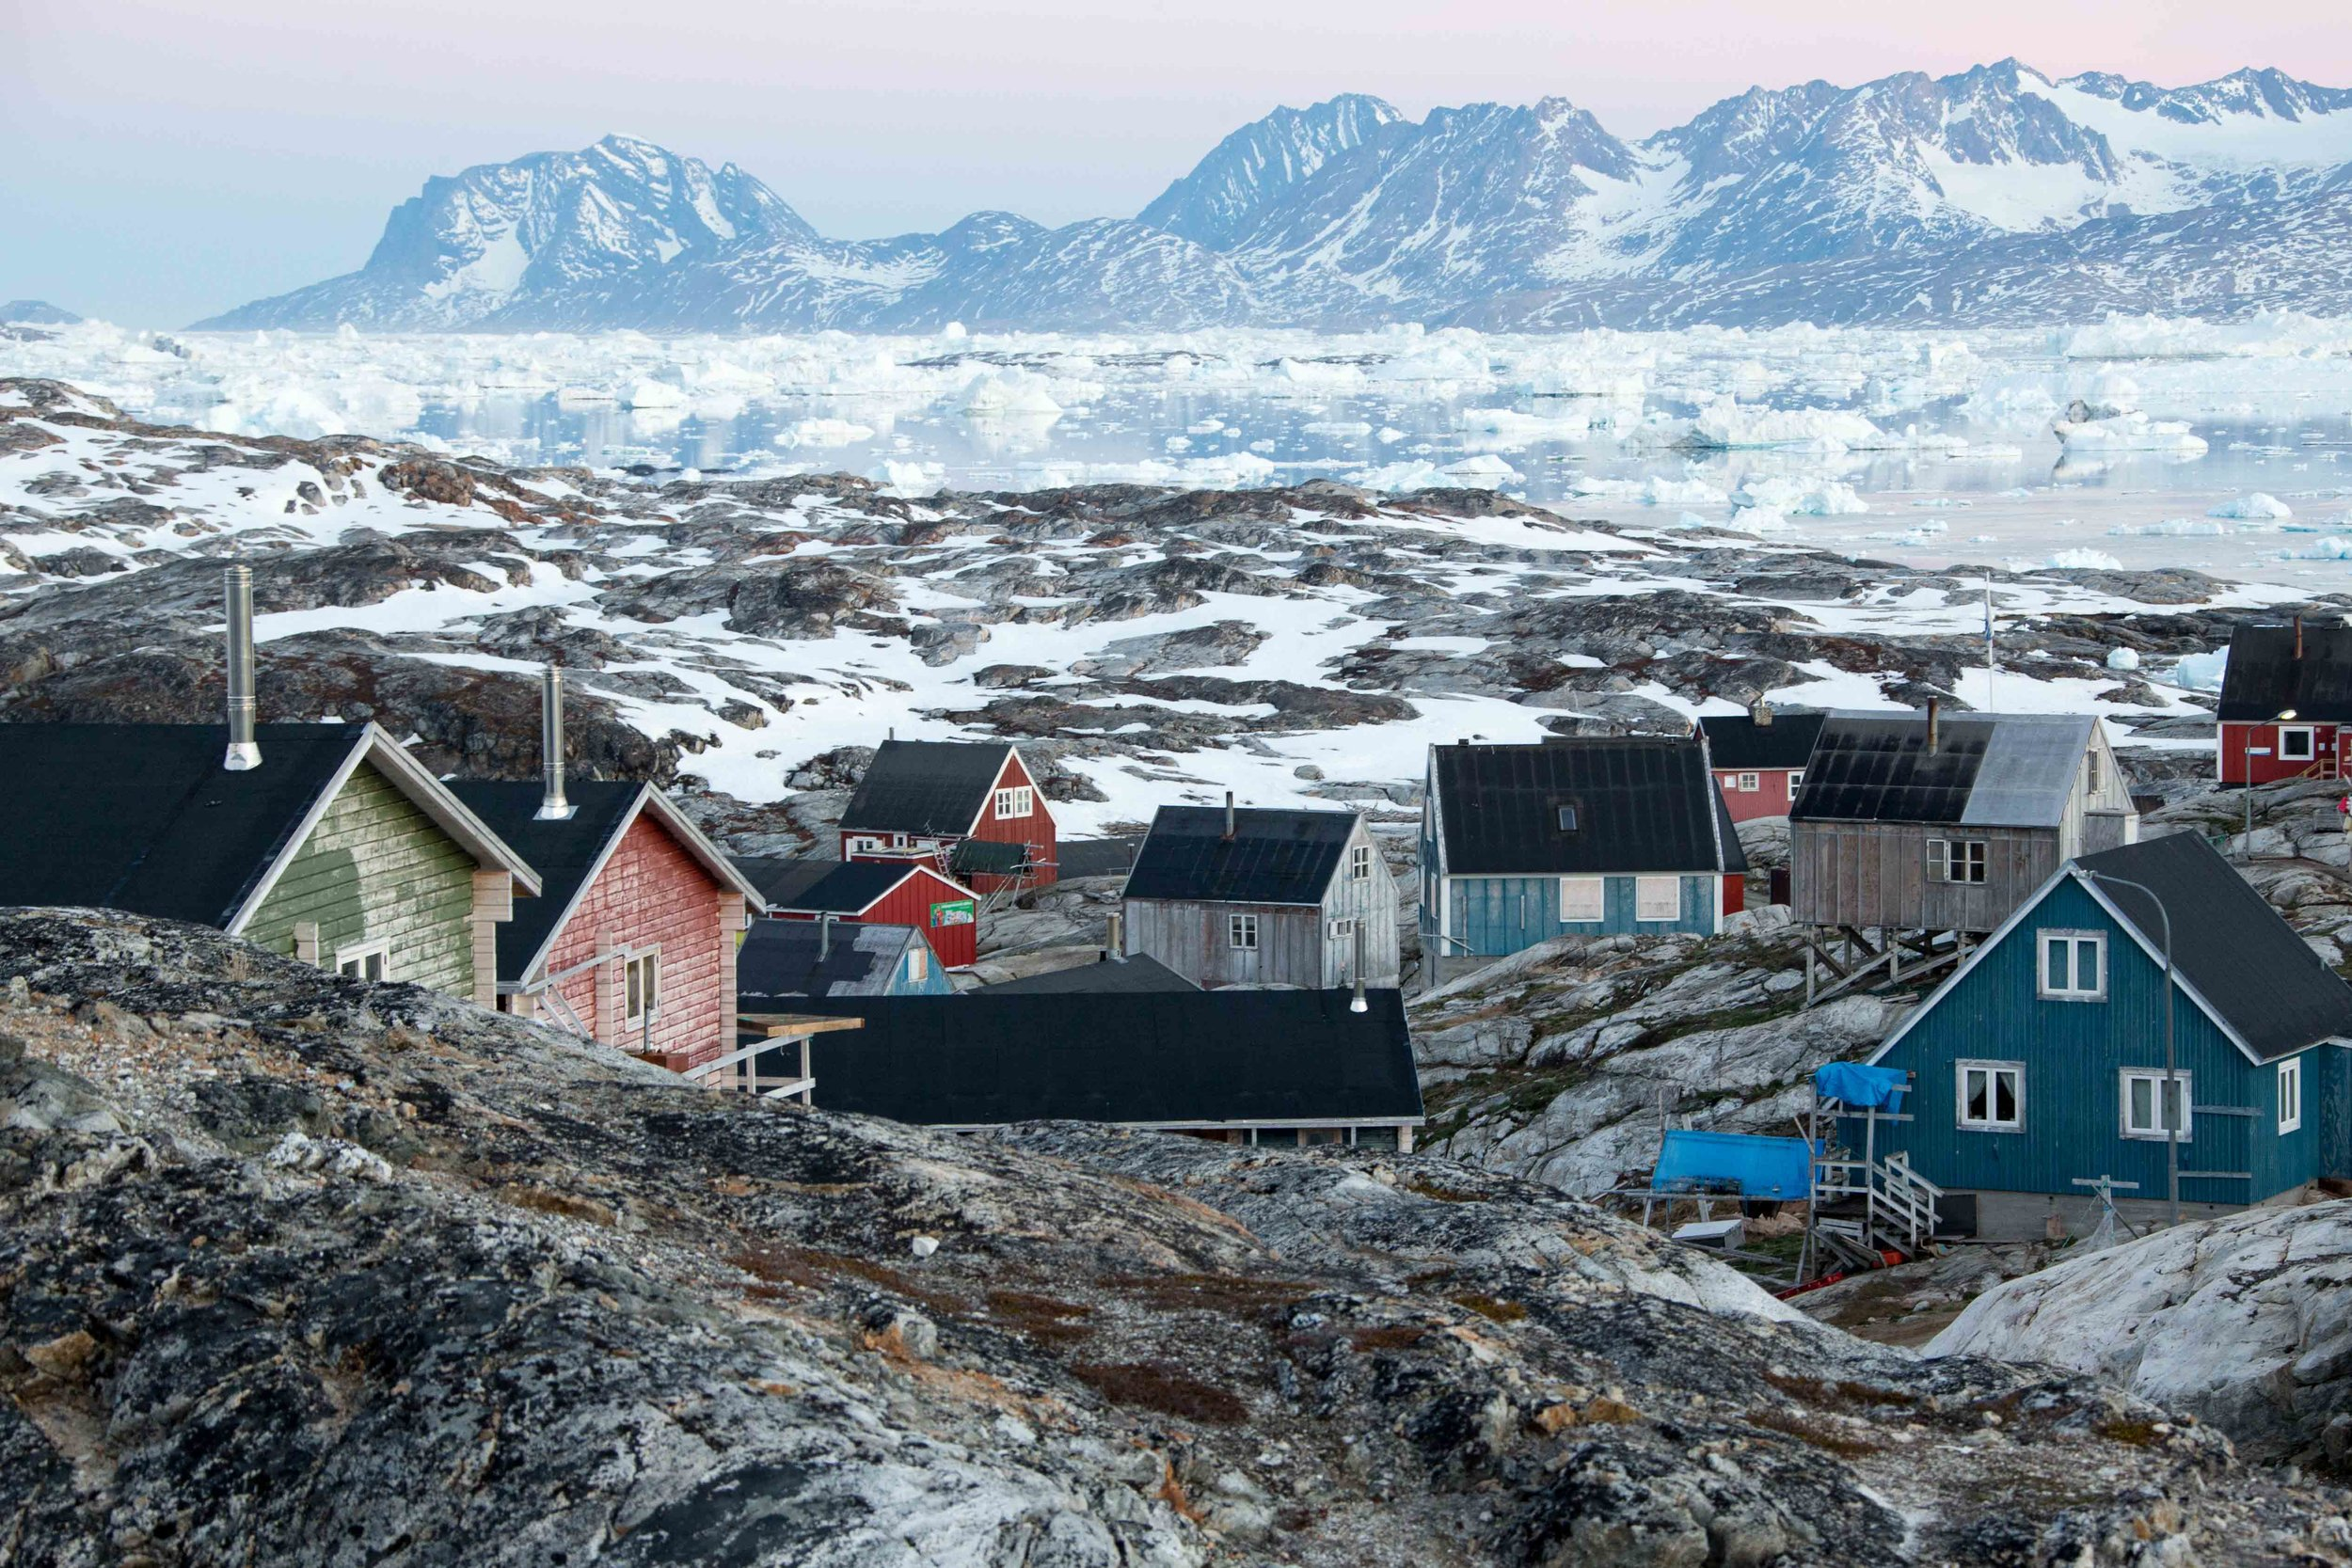 The settlement of Tinit, Greenland at 1am, still illuminated by the midnight sun.